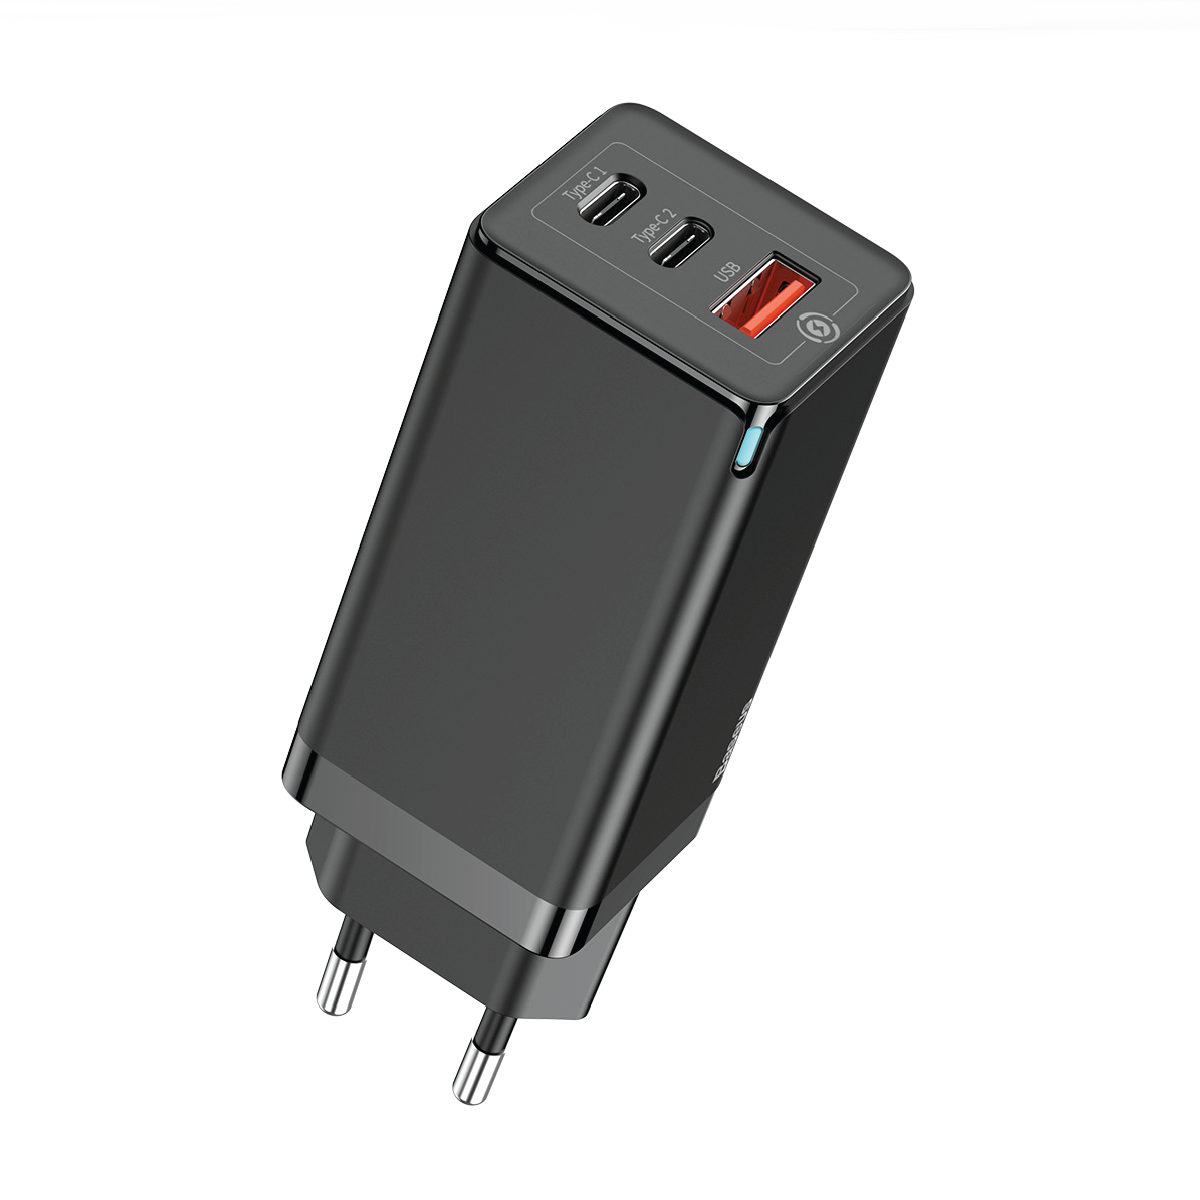 Baseus 65W GaN 2 Pro Fast Charger QC 4.0 3.0 USB Type-C PD with 100w  Type-C to Type-C Cable